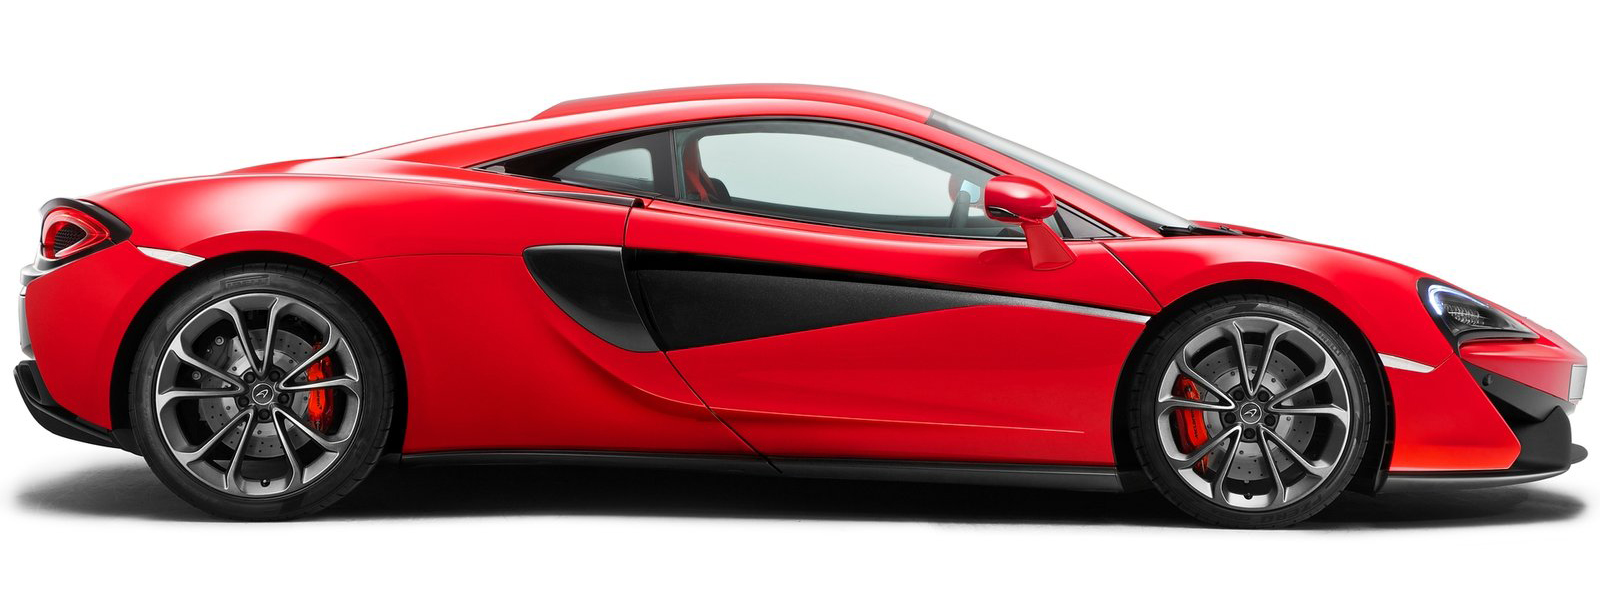 entry-level mclaren 540c coupe debuts in shanghai paul tan - image